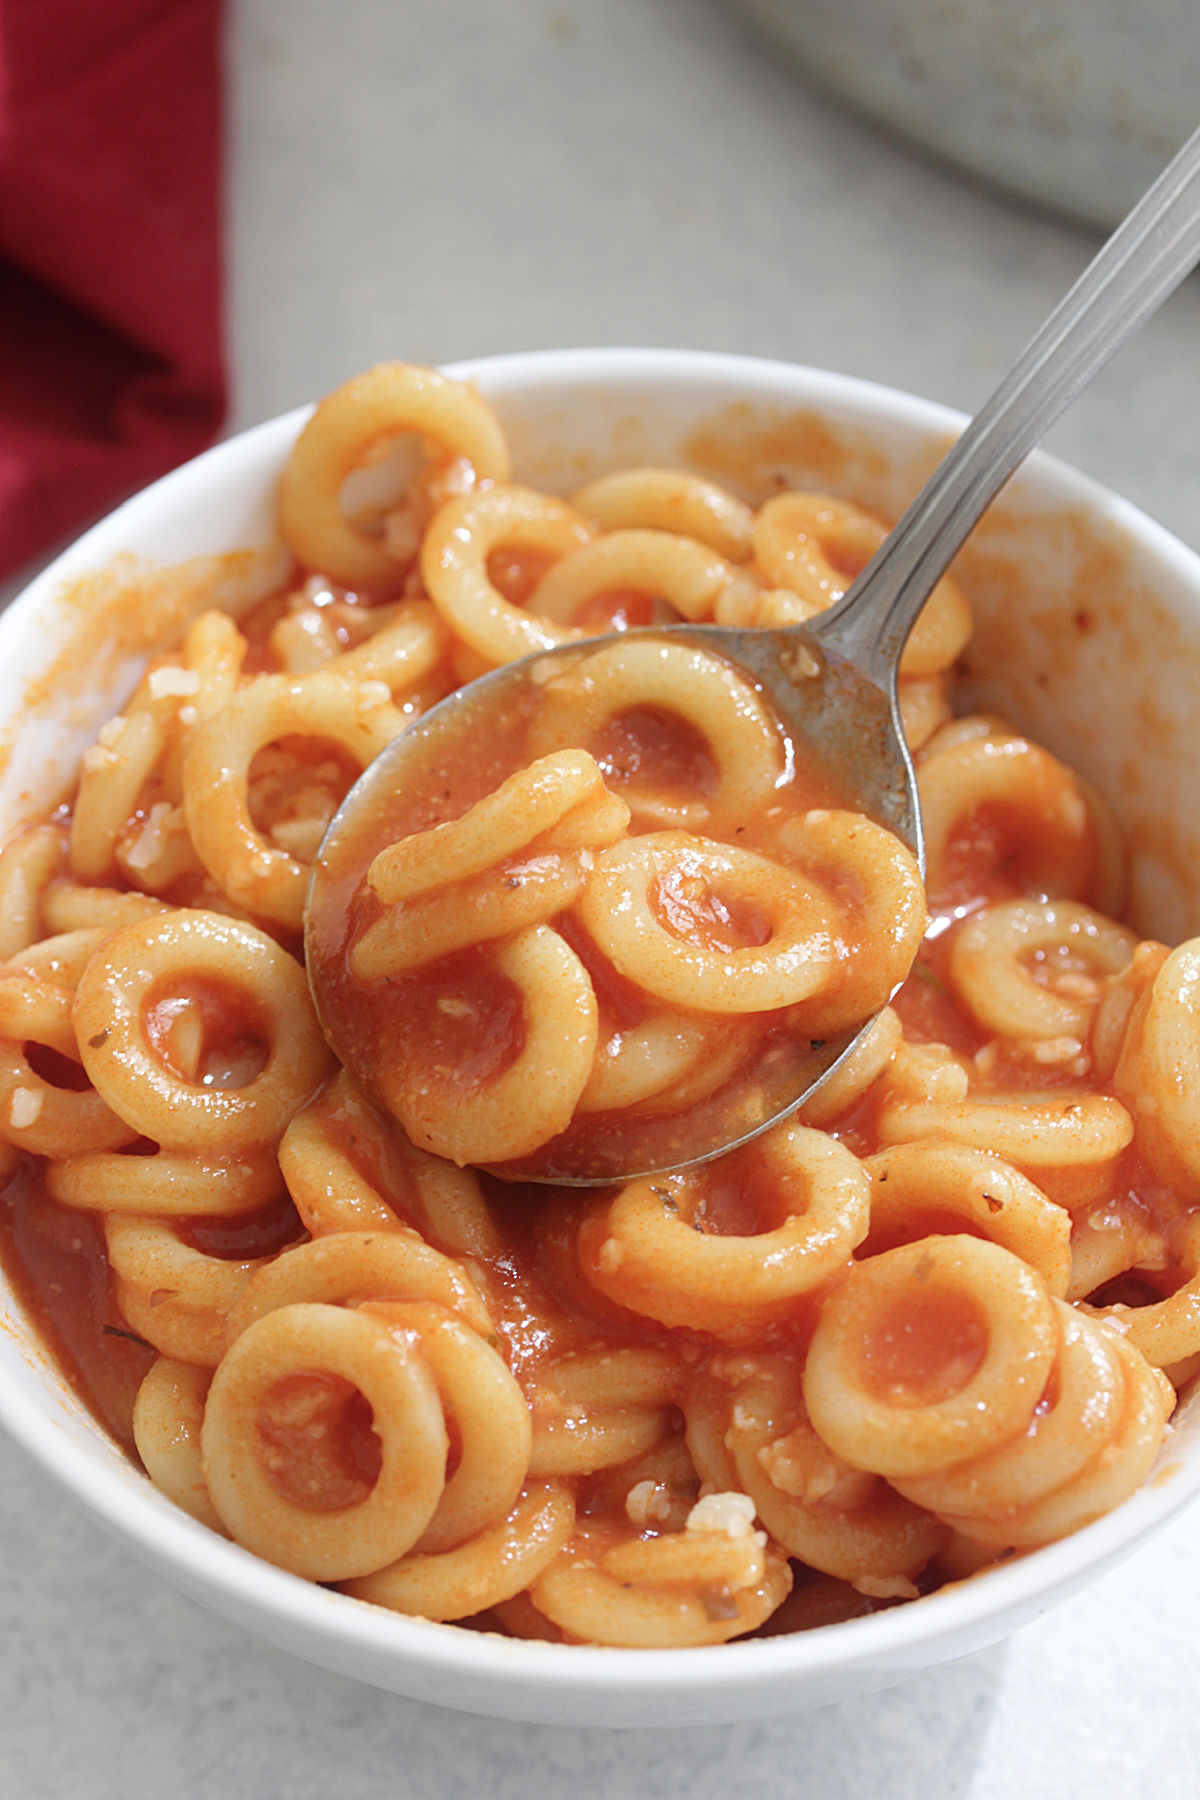 Homemade Spaghettios in a bowl with spoon